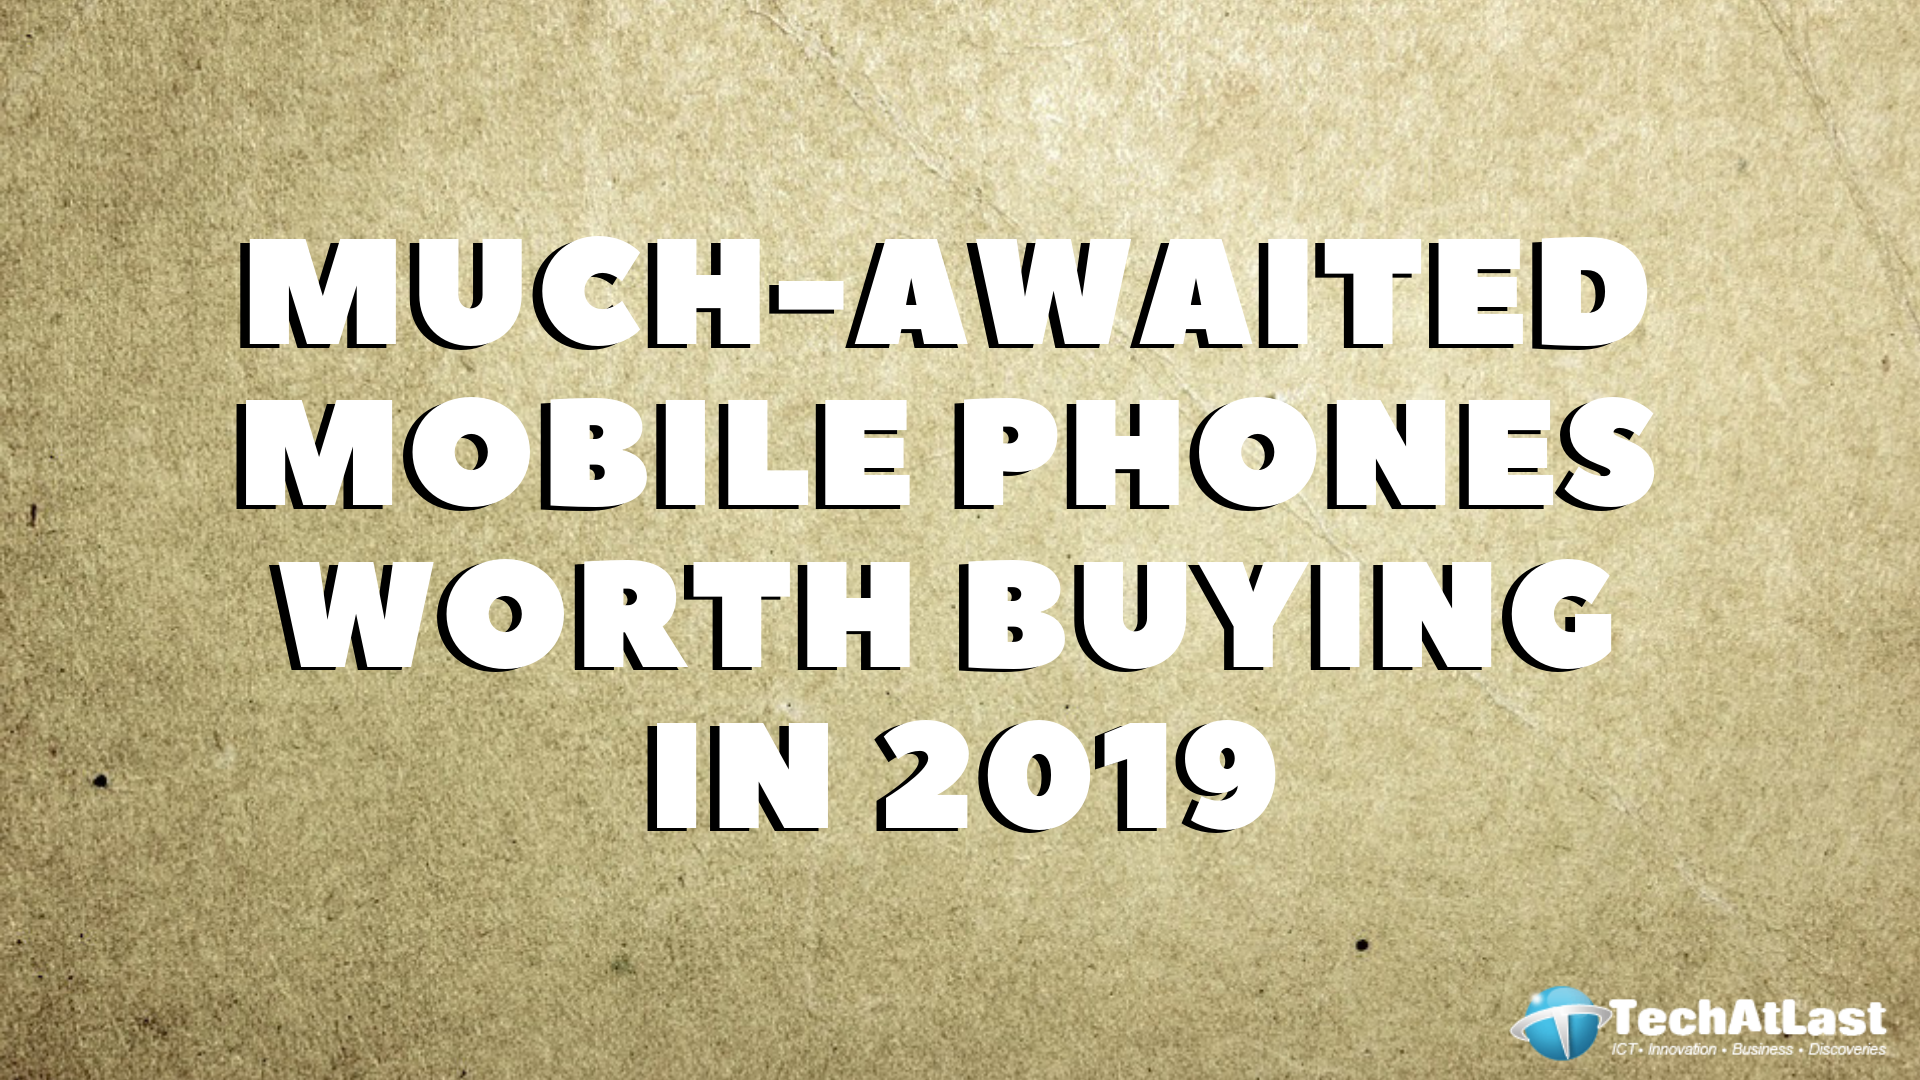 MUCH-AWAITED MOBILE PHONES WORTH BUYING IN 2019